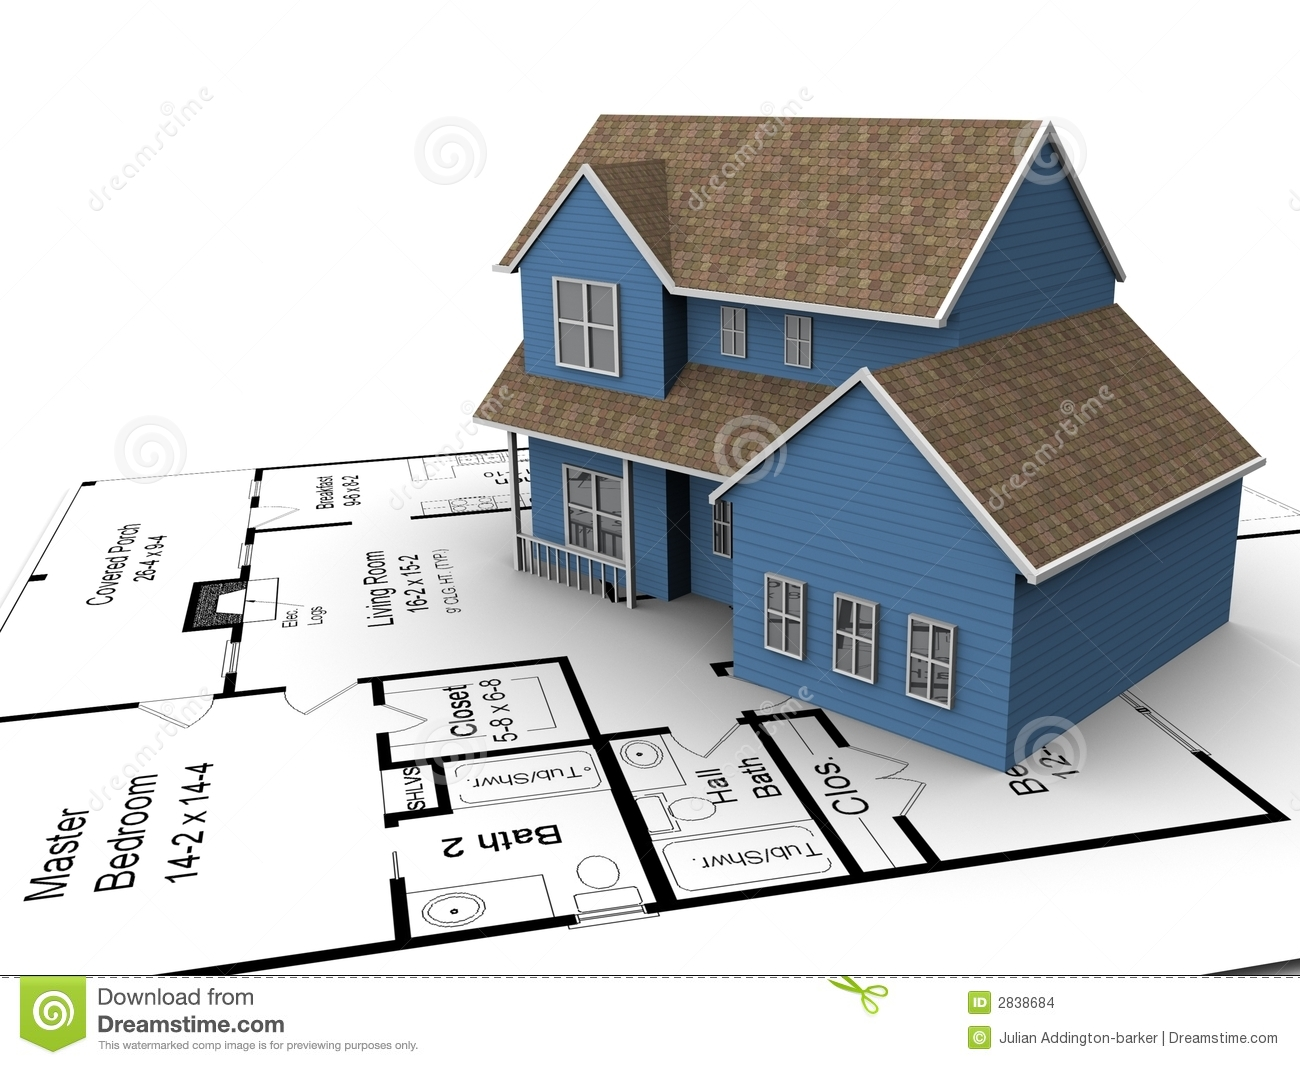 New house plans stock illustration image of design for House construction design